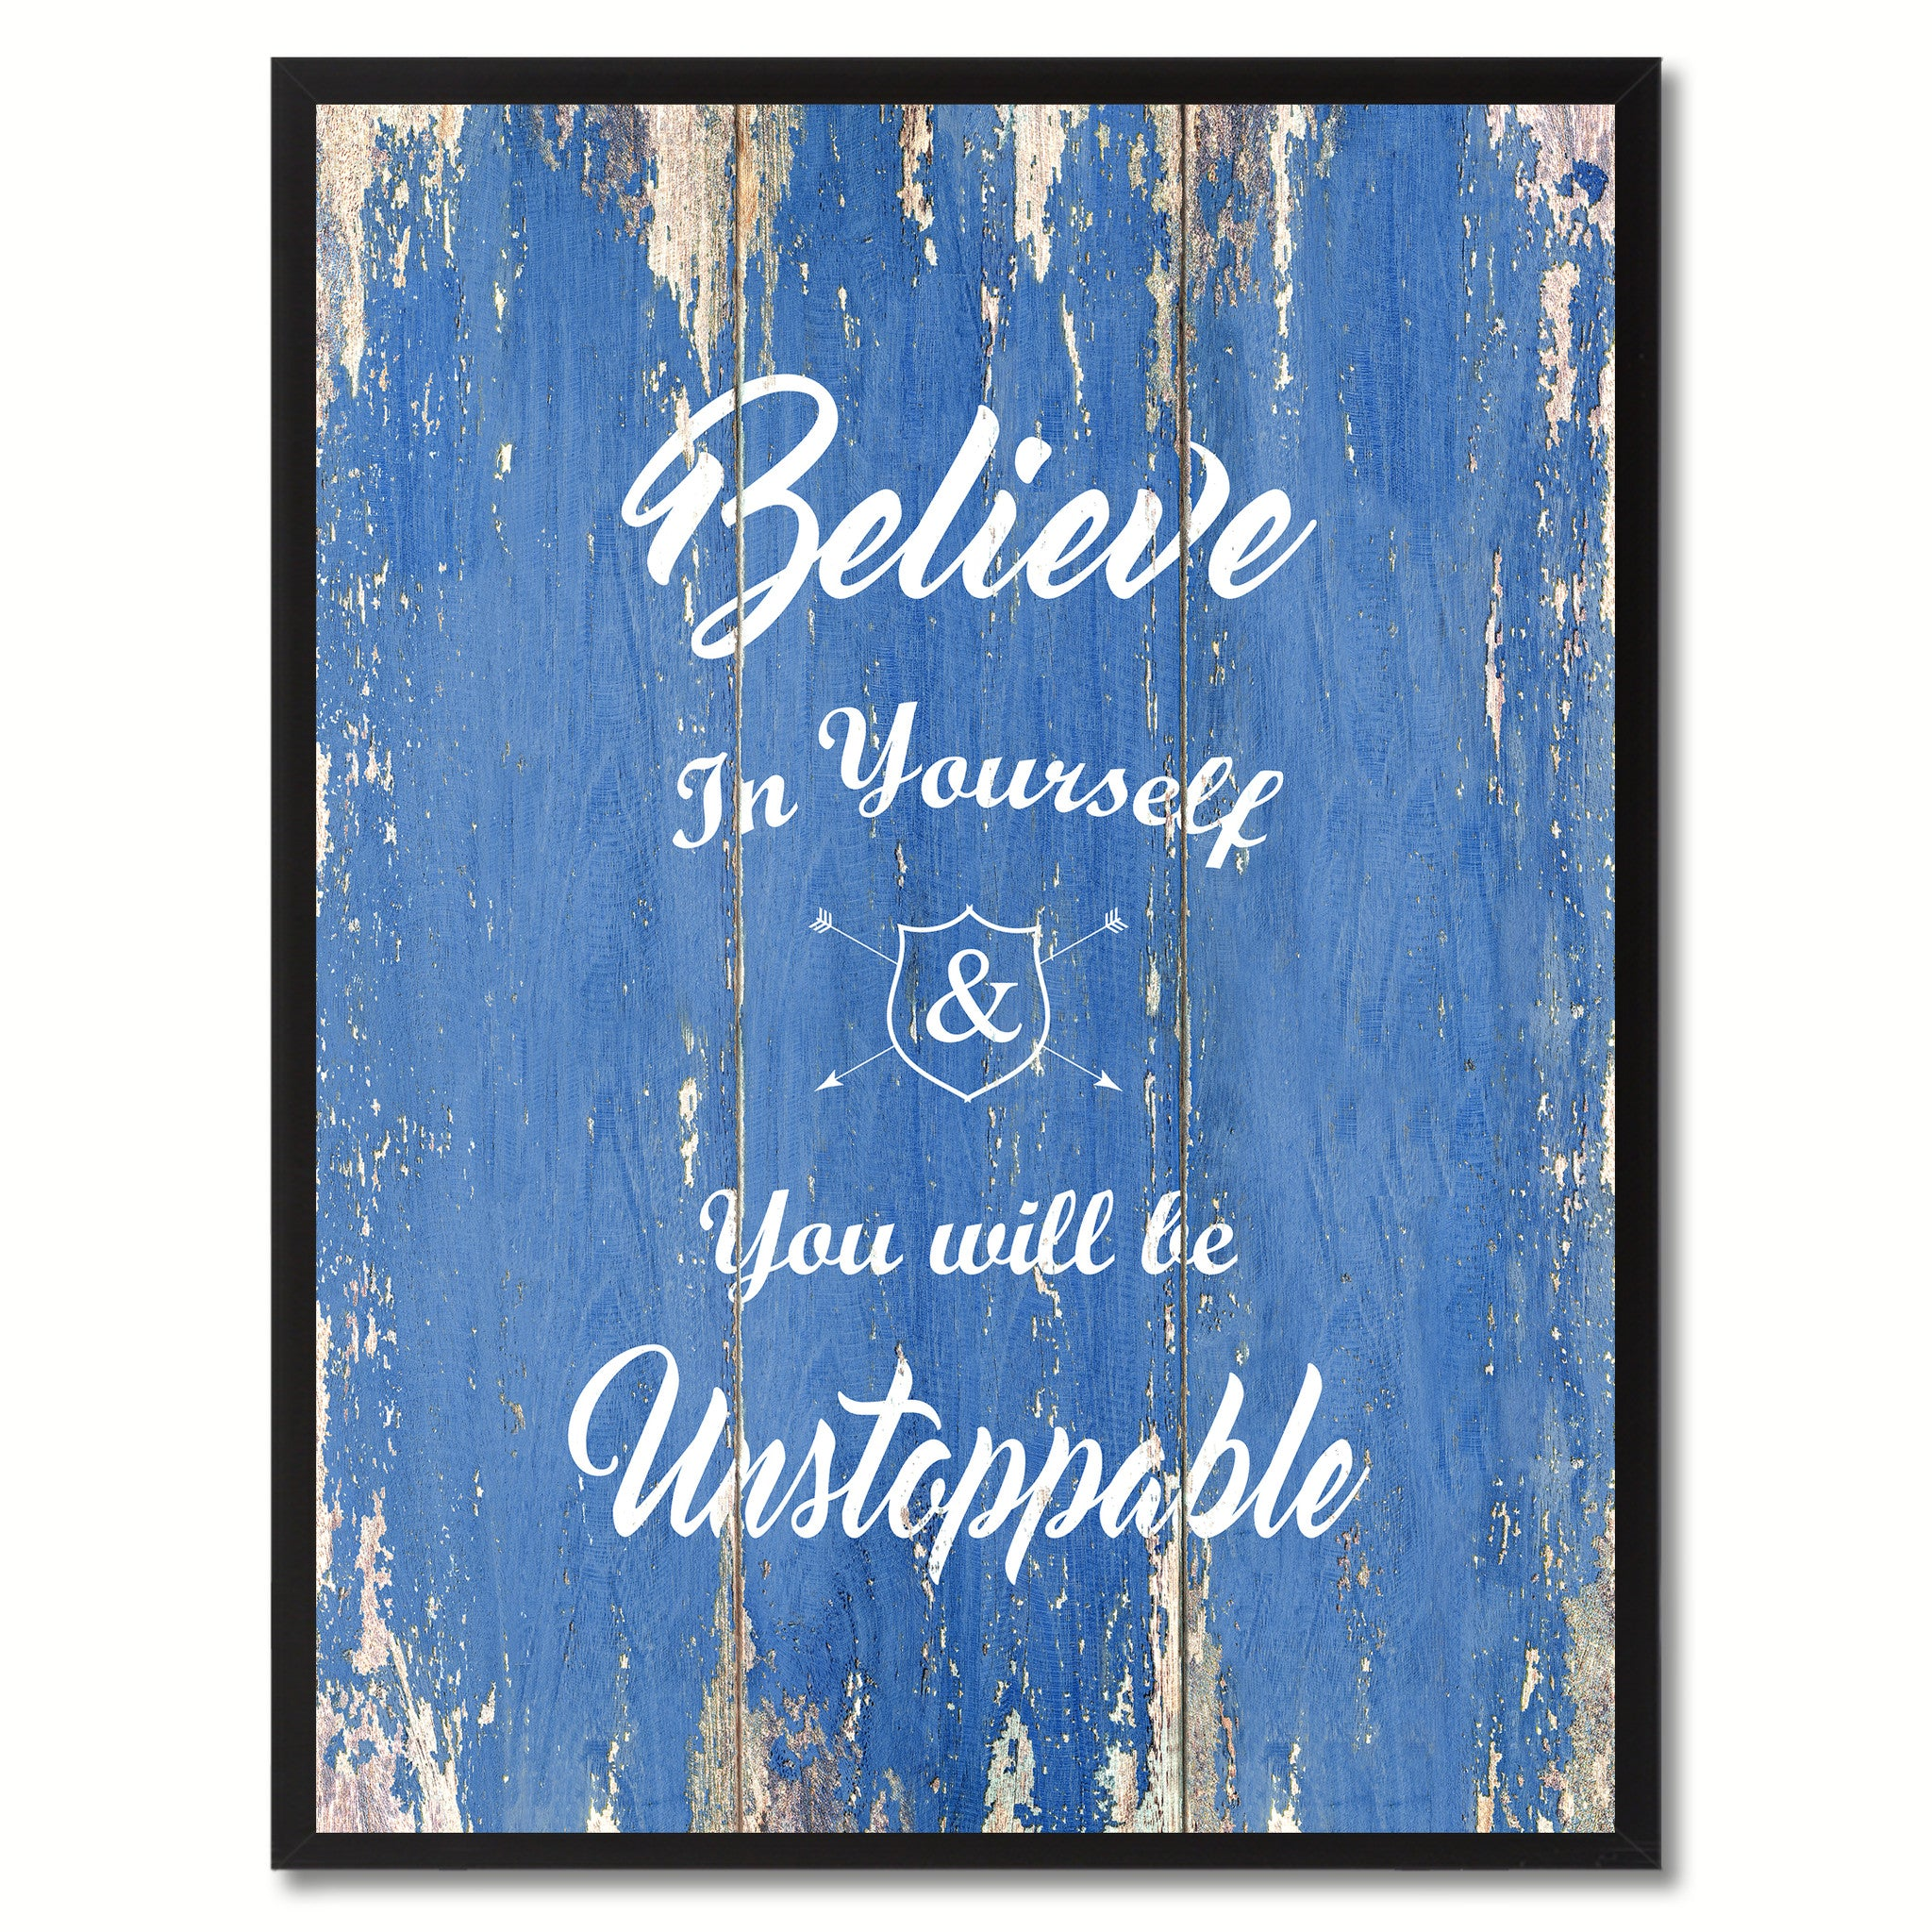 Believe in yourself you will be unstoppable motivation quote saying believe in yourself you will be unstoppable quote saying gift ideas home dcor wall art solutioingenieria Gallery